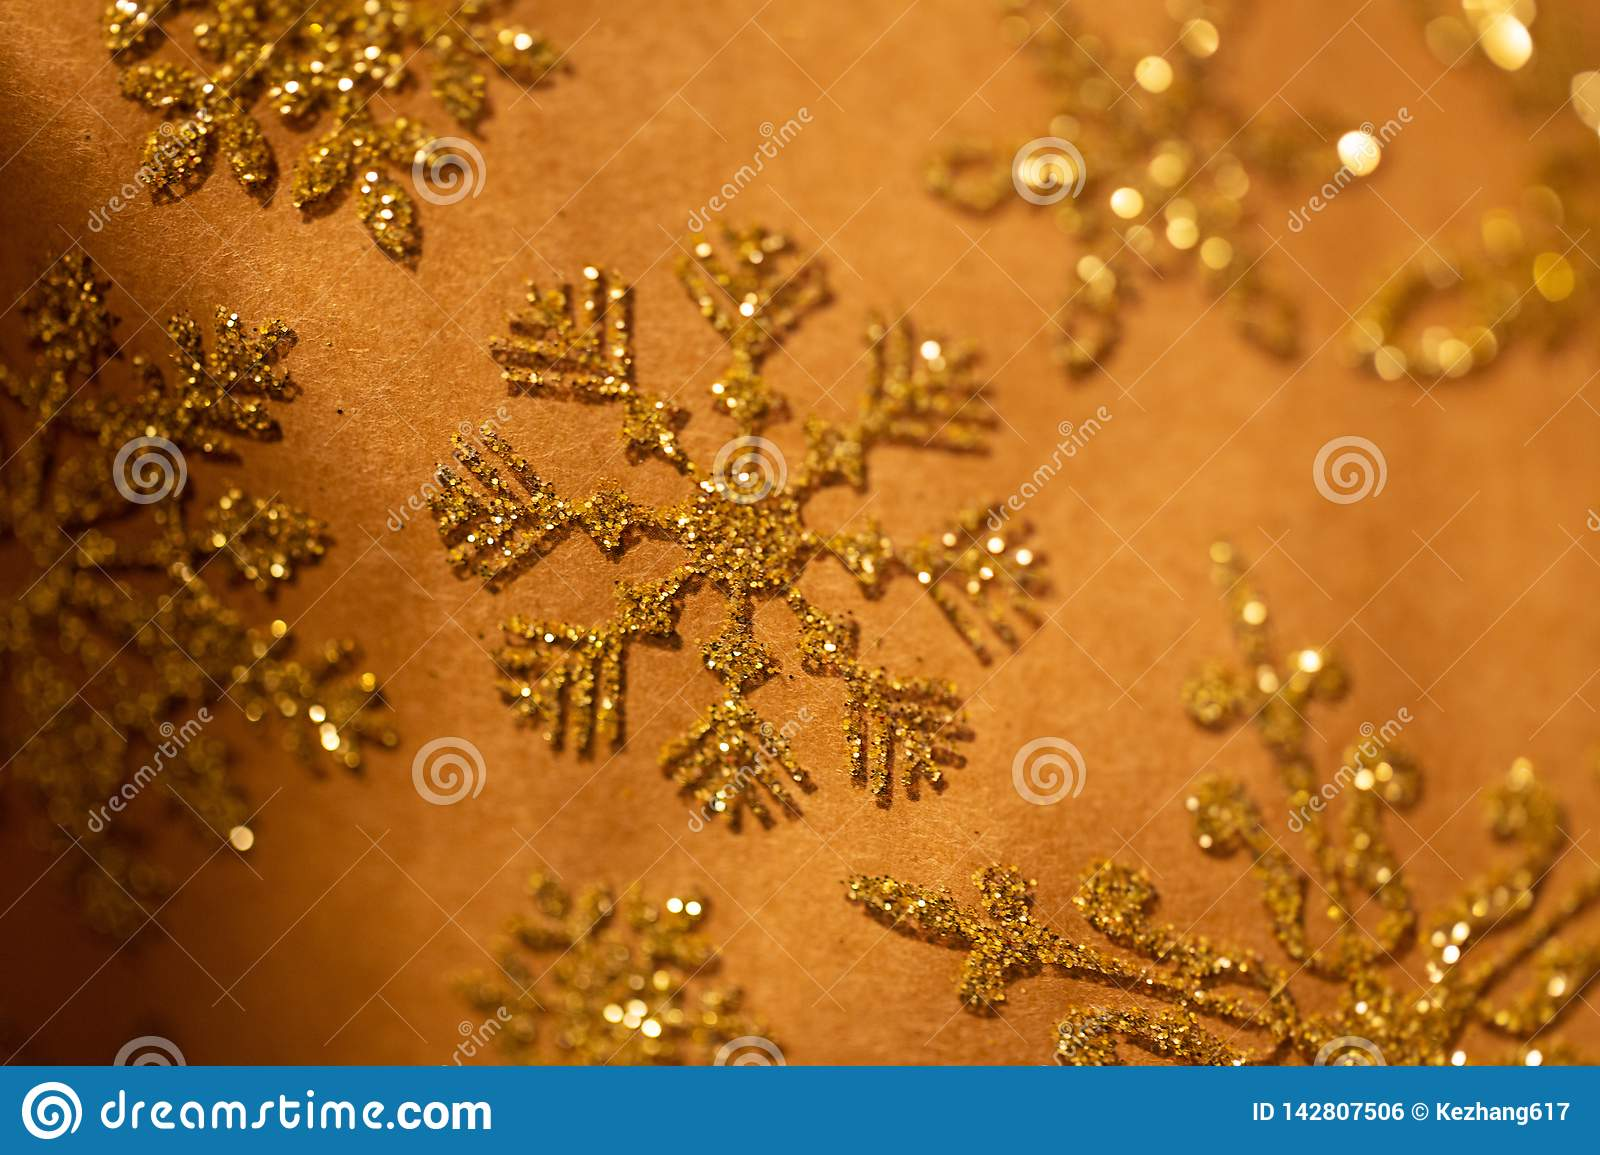 Gold snowflake glitter pattern on brown